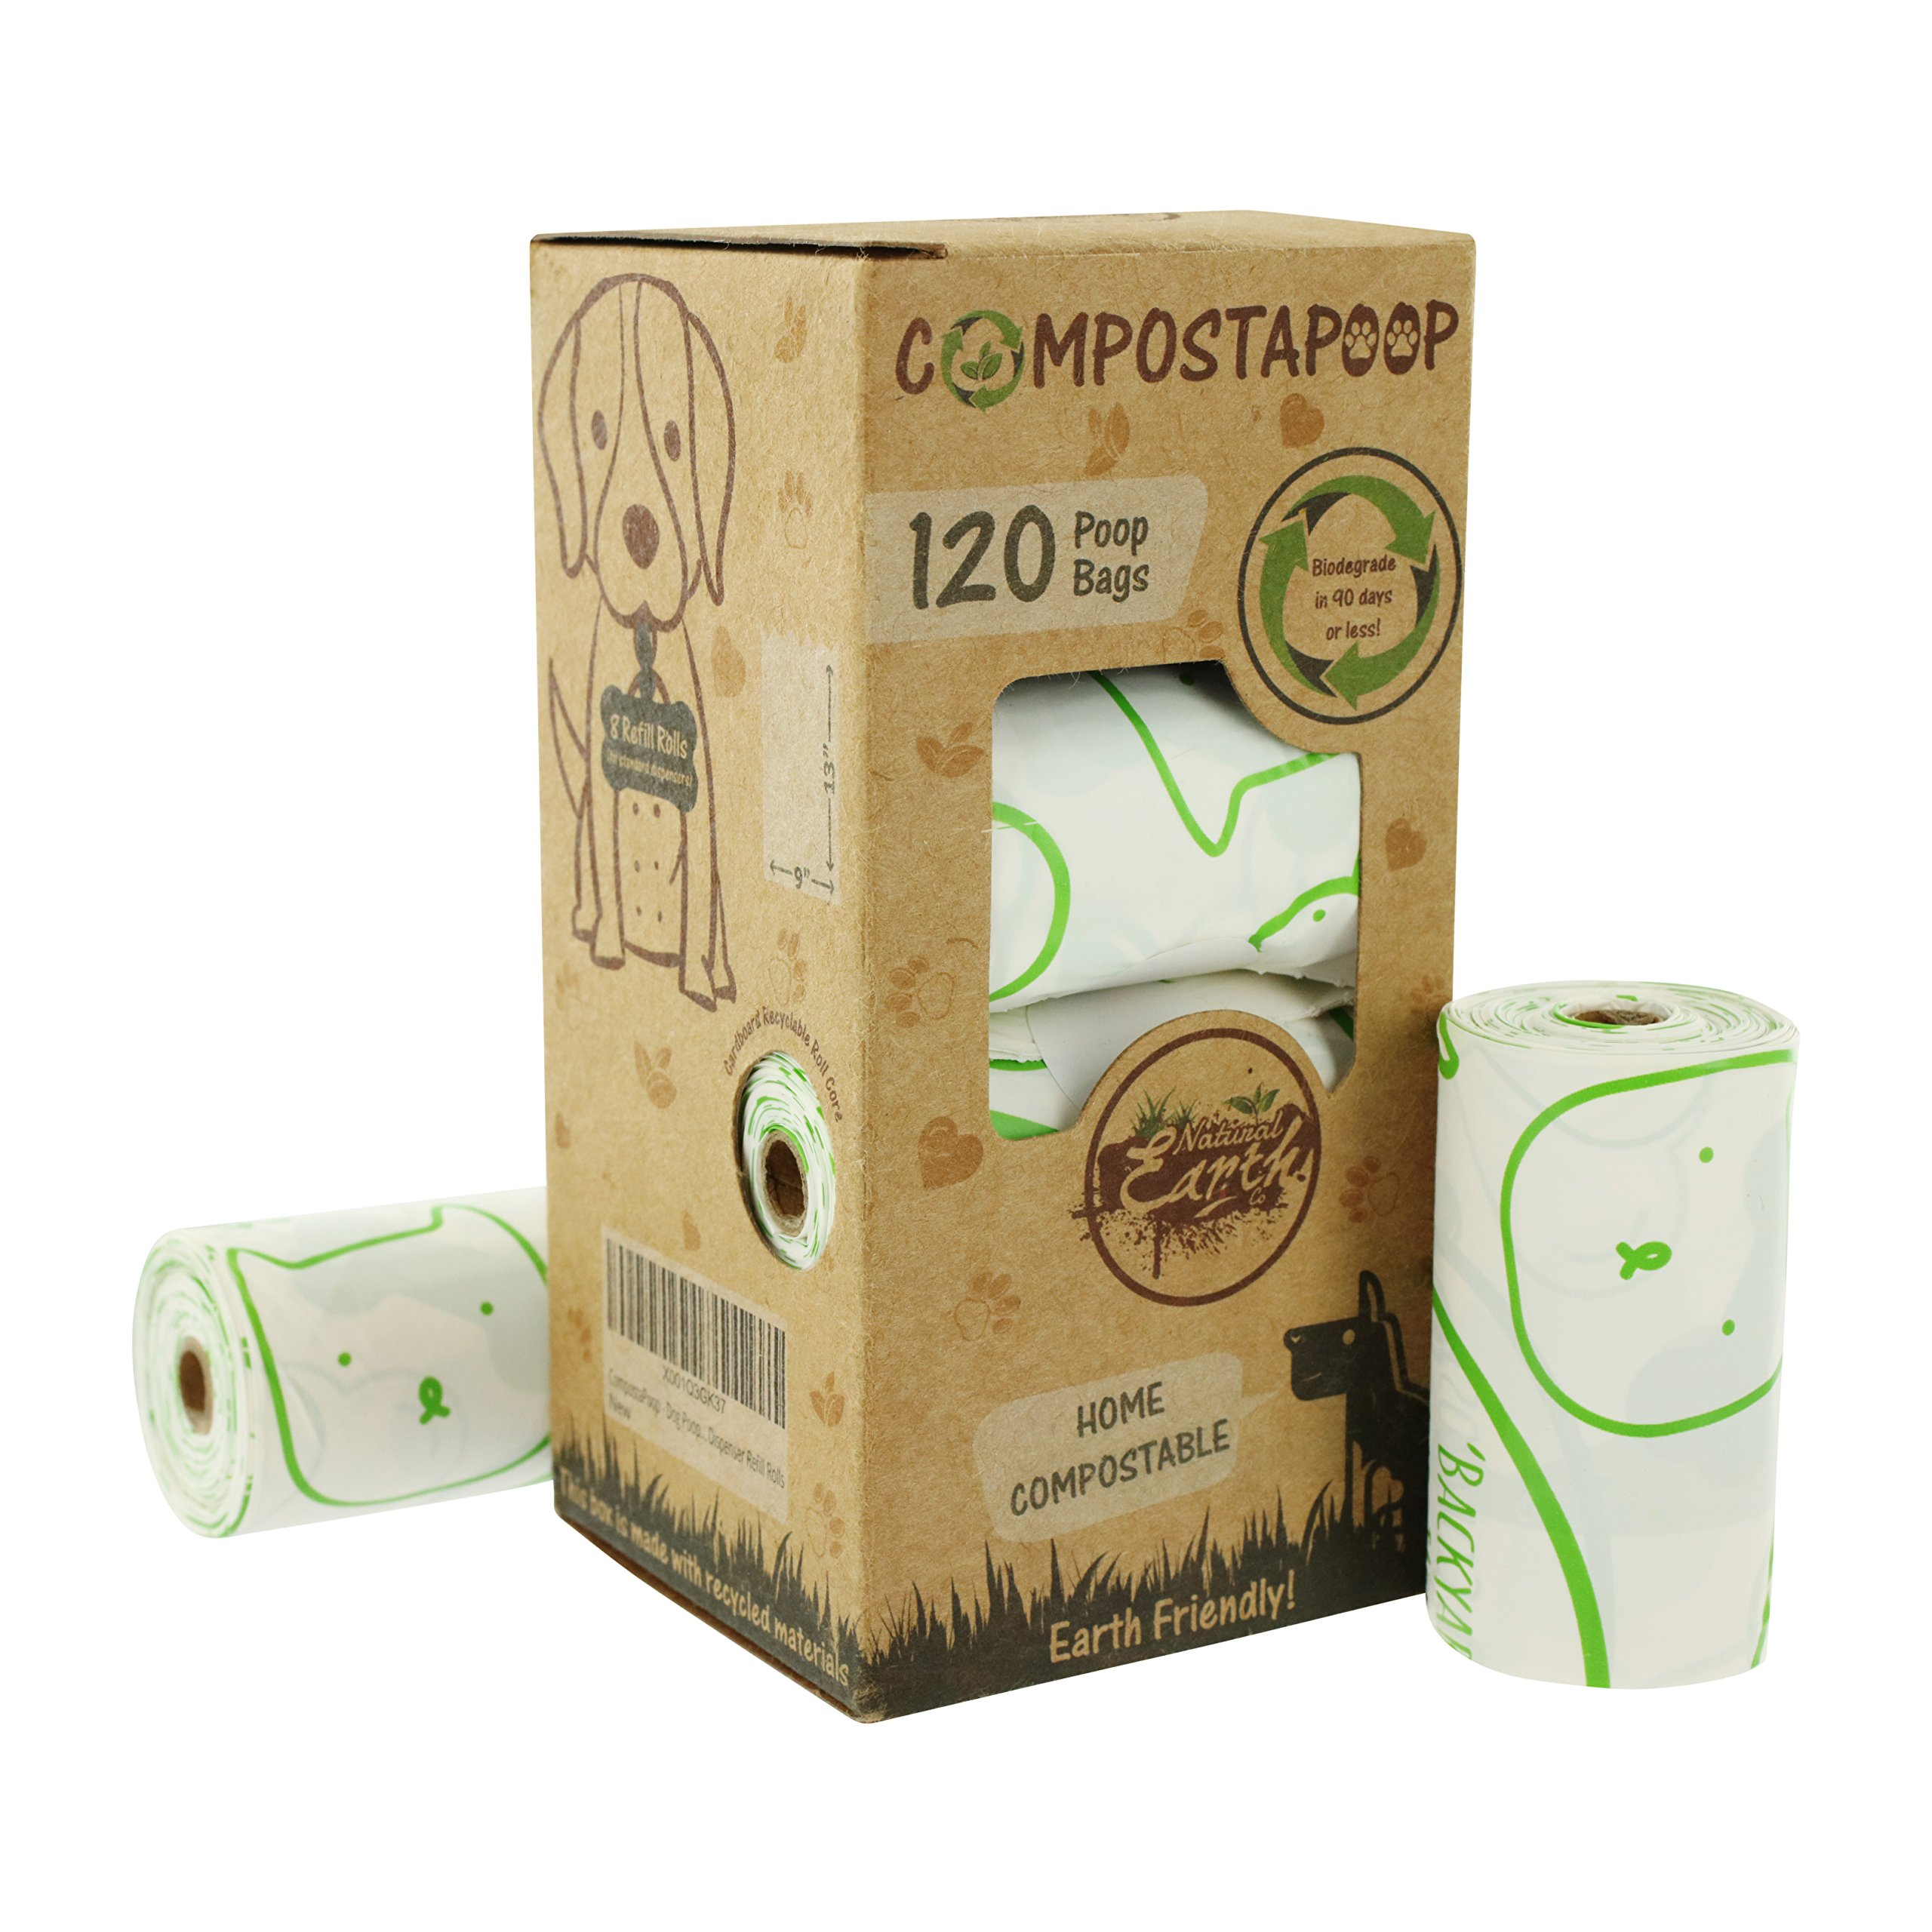 CompostaPoop Dog Poop Waste Bags Biodegradable Compostable Earth Friendly Dispenser Refill Rolls